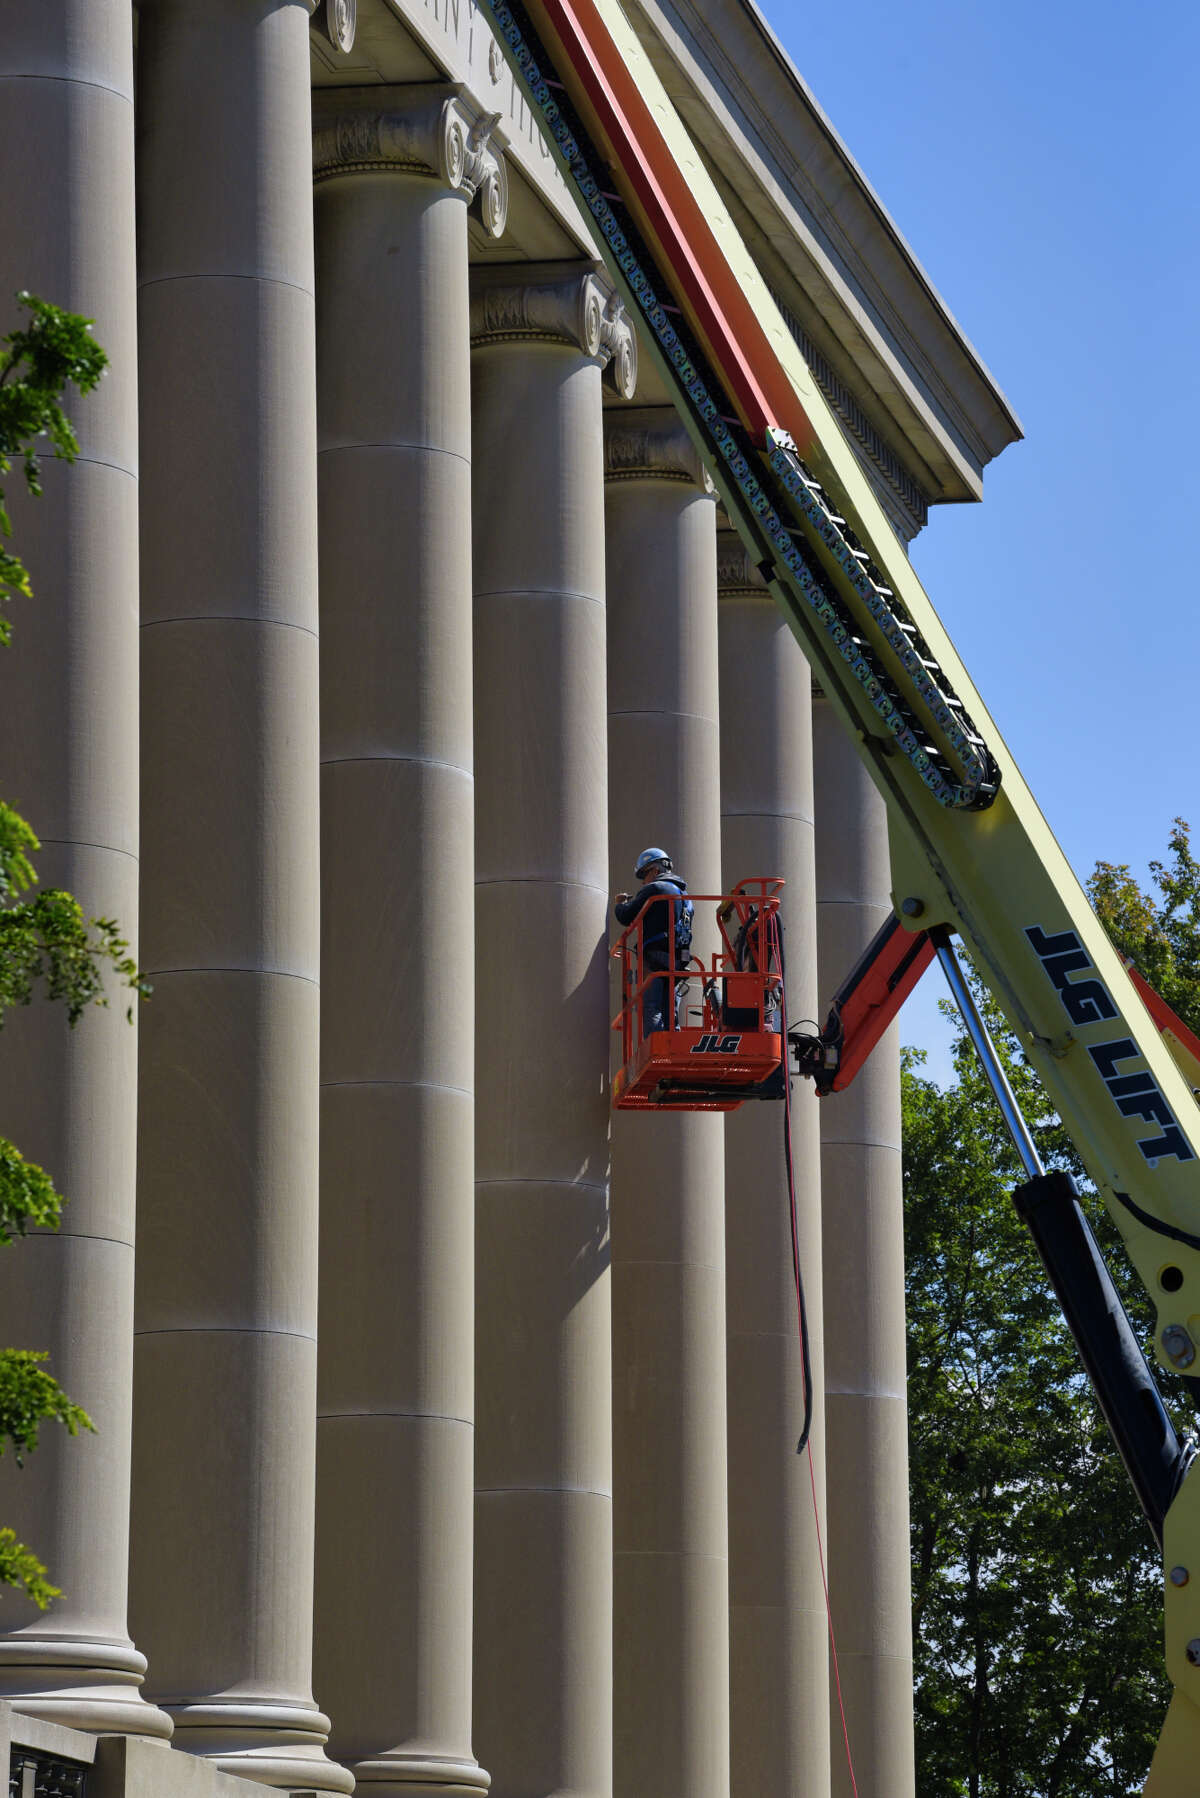 A man on a lift works on a column at the Schuyler Building at the University at Albany downtown campus on Wednesday, Sept. 18, 2019, in Albany, N.Y. Rehab work is being done on the building and when complete it will house the university's College of Engineering and Applied Sciences. (Paul Buckowski/Times Union)